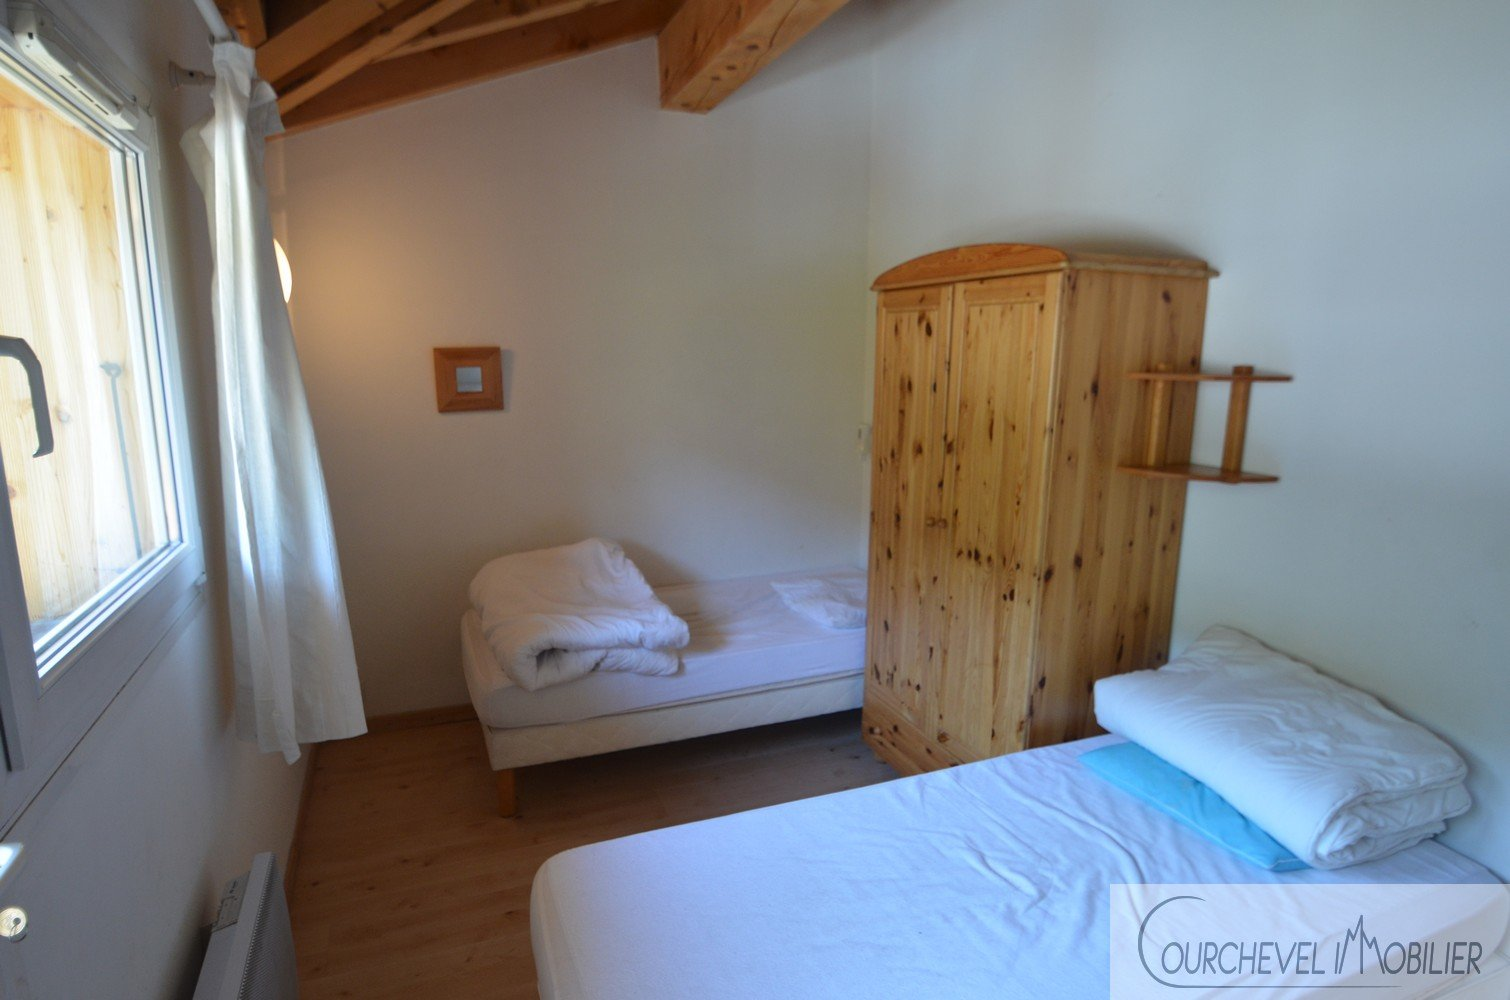 CHALET 8 PEOPLE - SEASONAL RENTAL